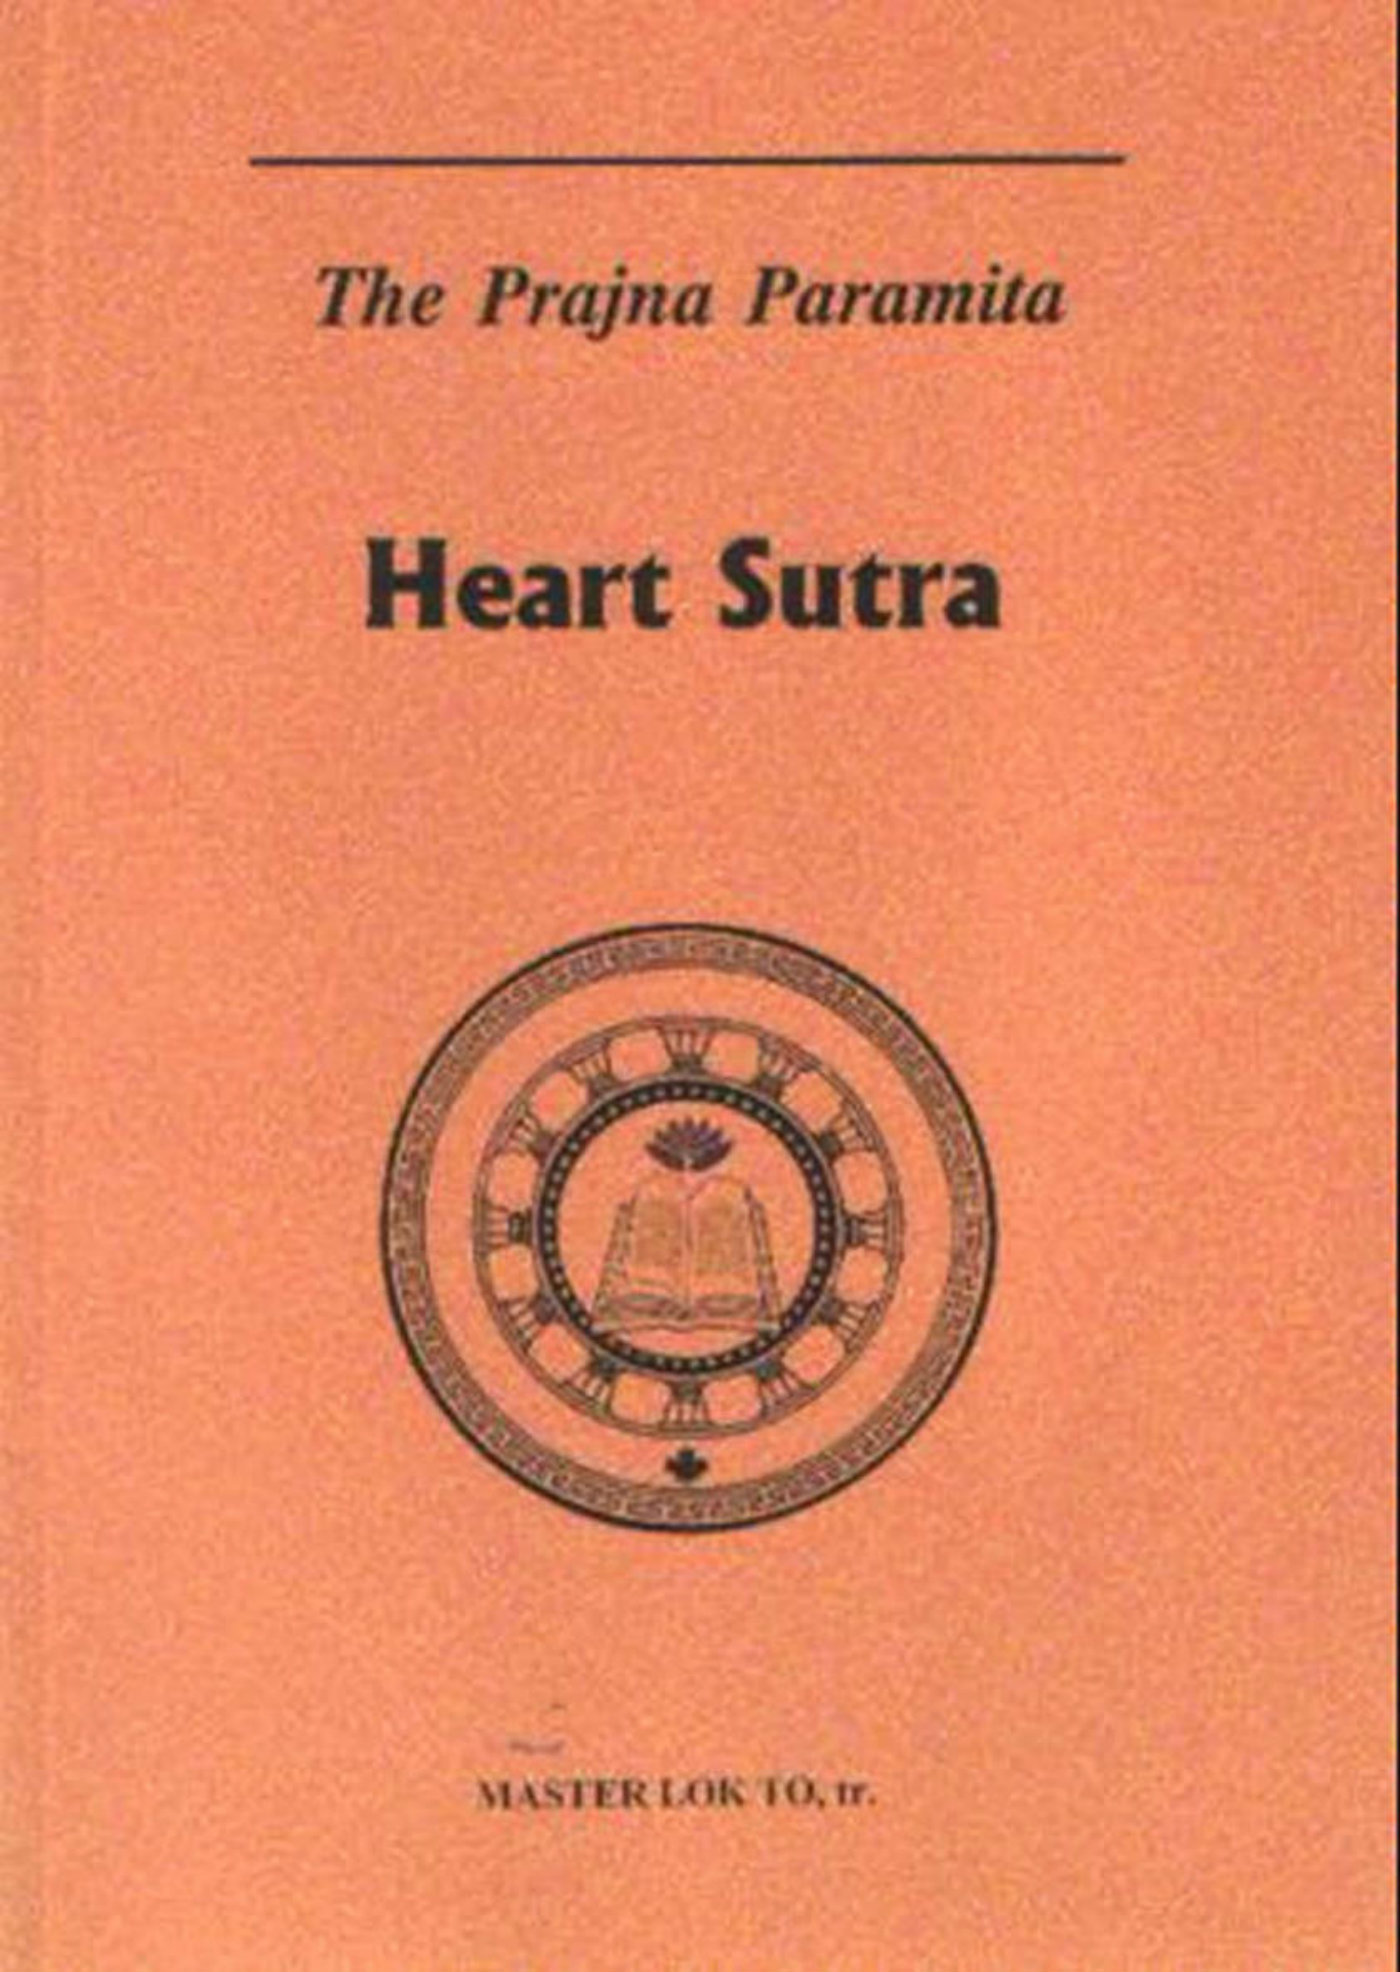 The Prajna Paramita Heart Sutra